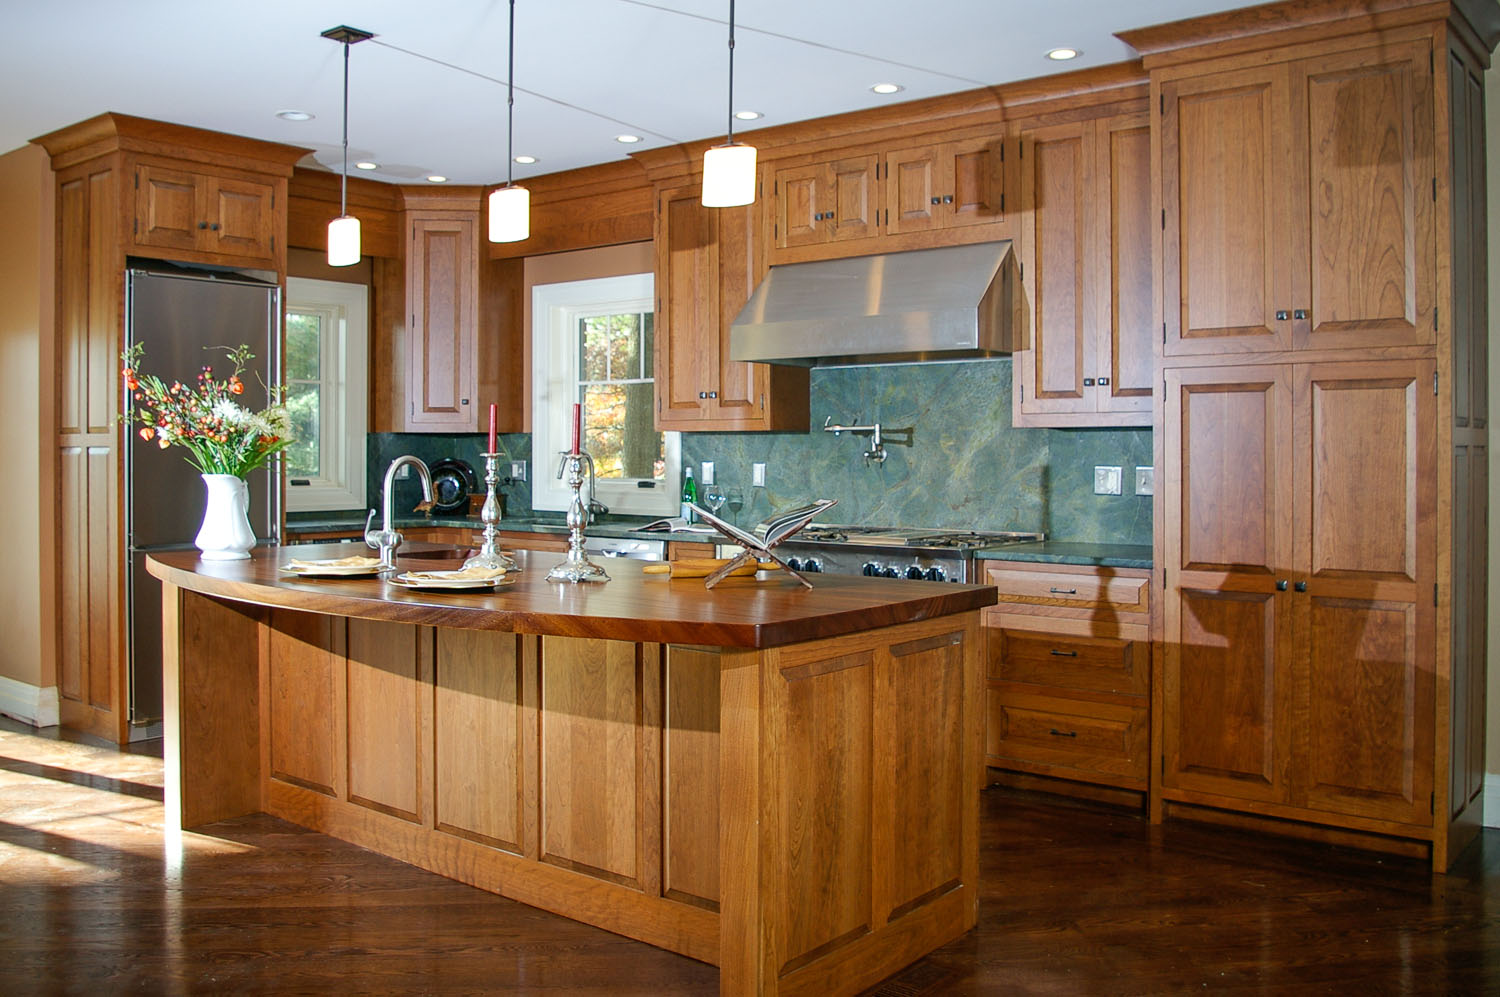 Kitchen Remodel-1.jpg